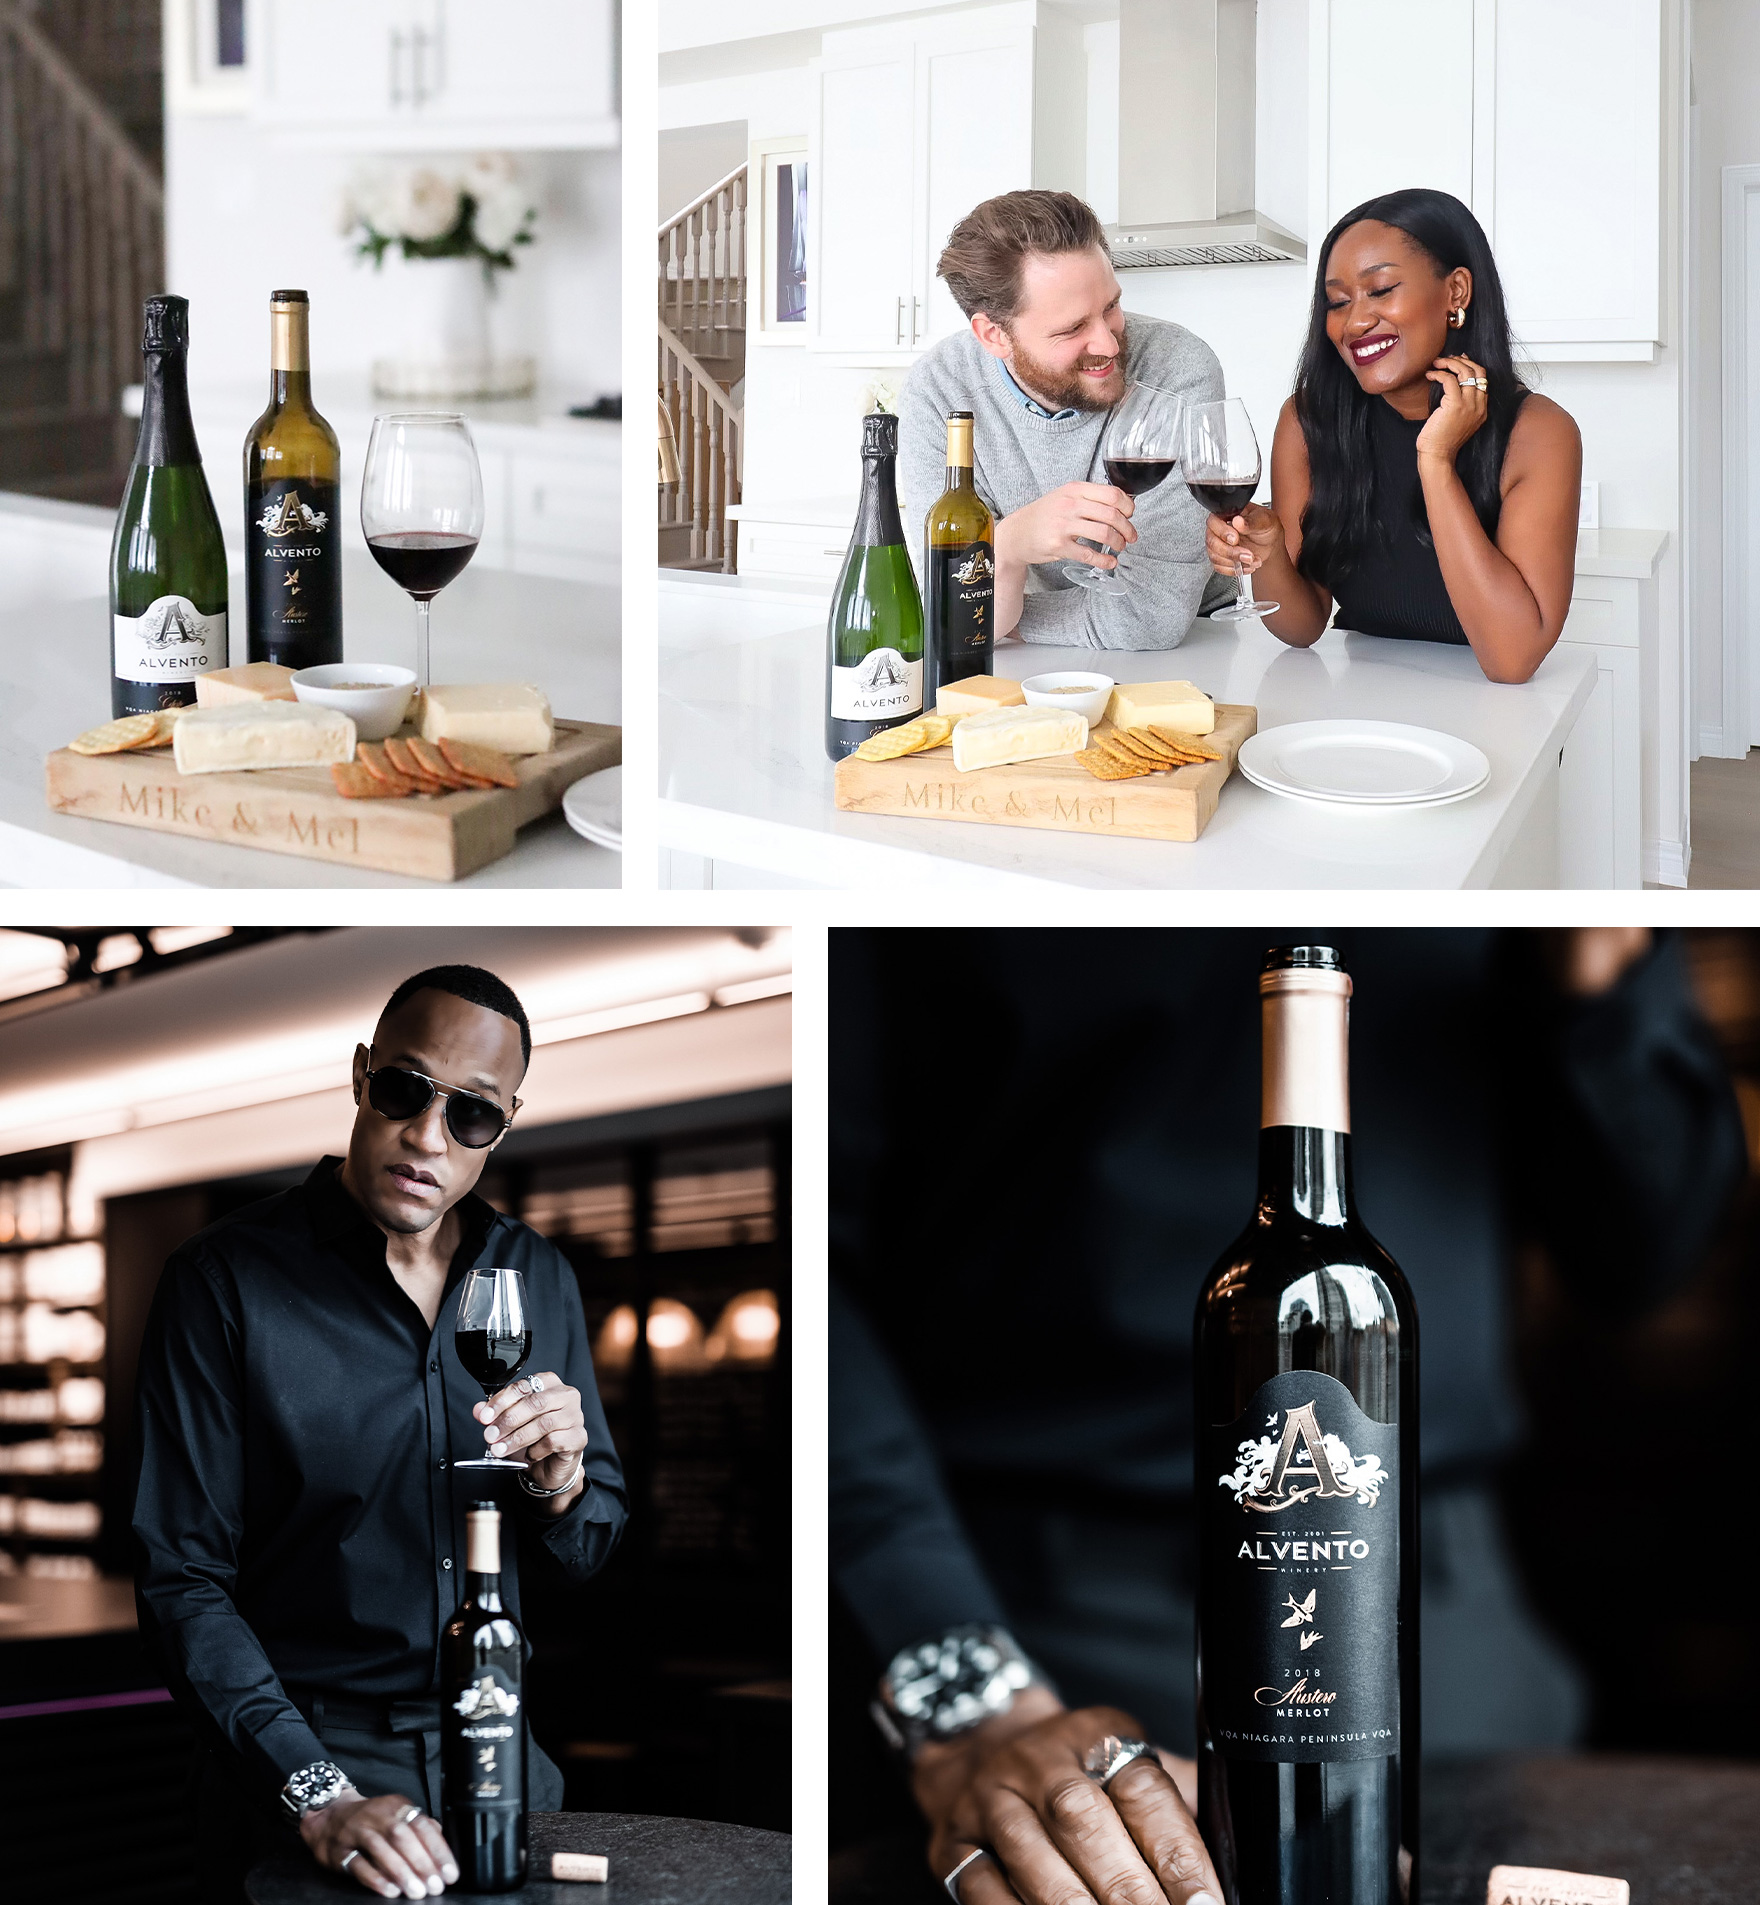 4 Image Collage (Clockwise) - Wine & charcuterie board, Couple clinking glasses in the kitchen, Bottle of Merlot, Man with sunglasses drinking a glass of red wine